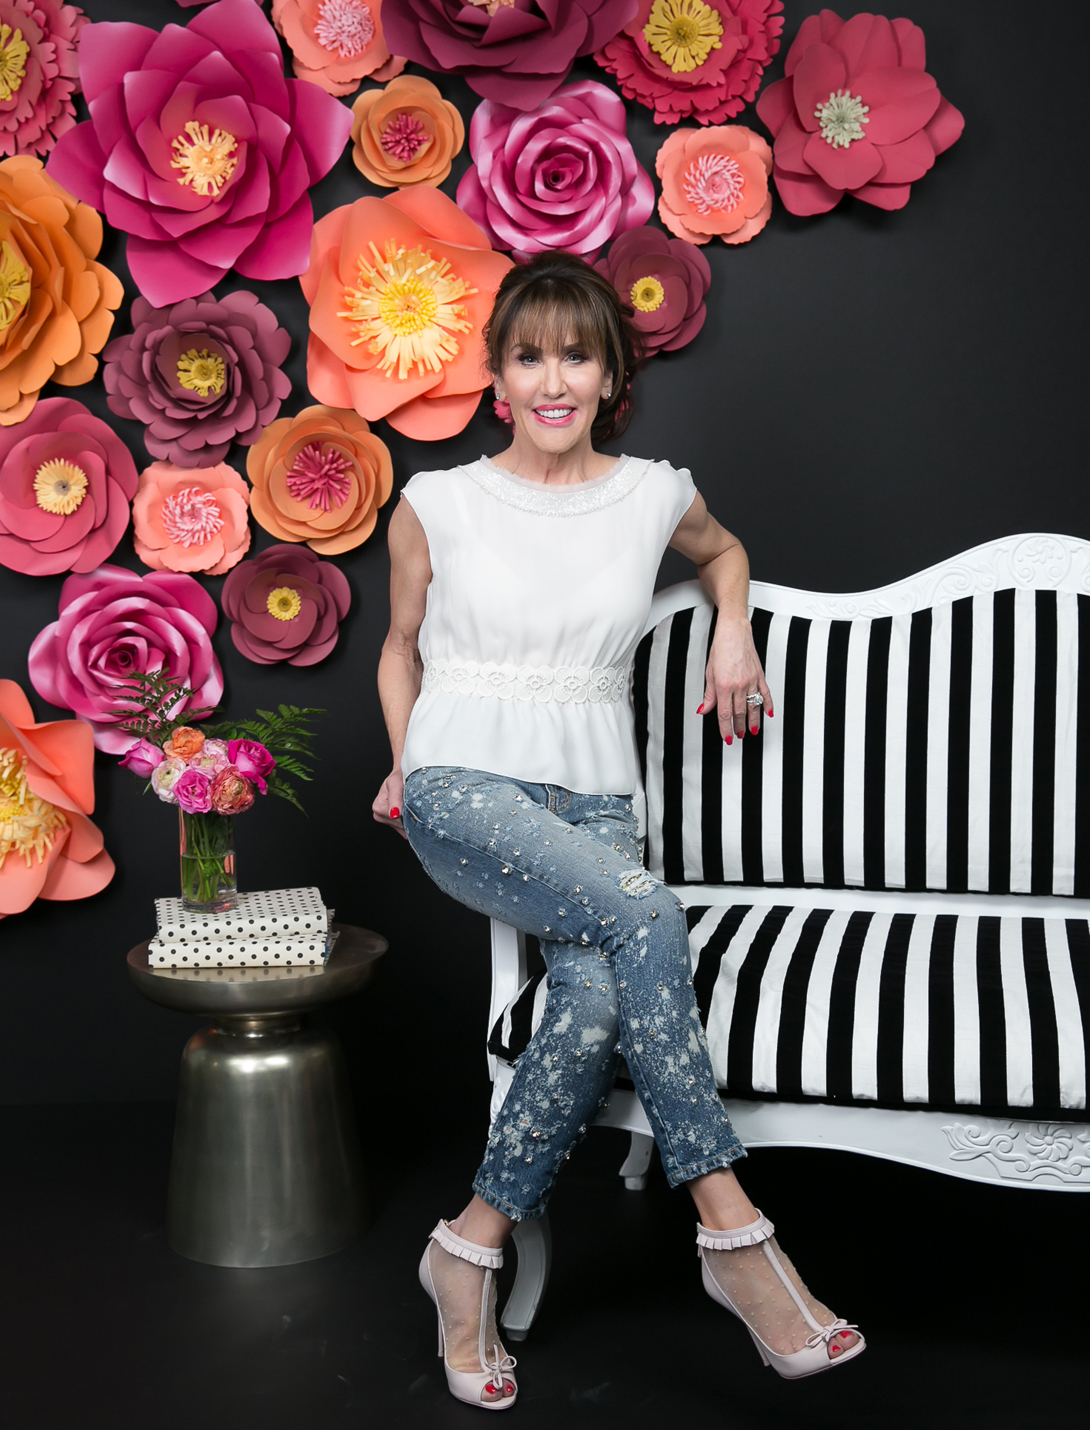 Robin McGraw - Beautiful Women Over 50